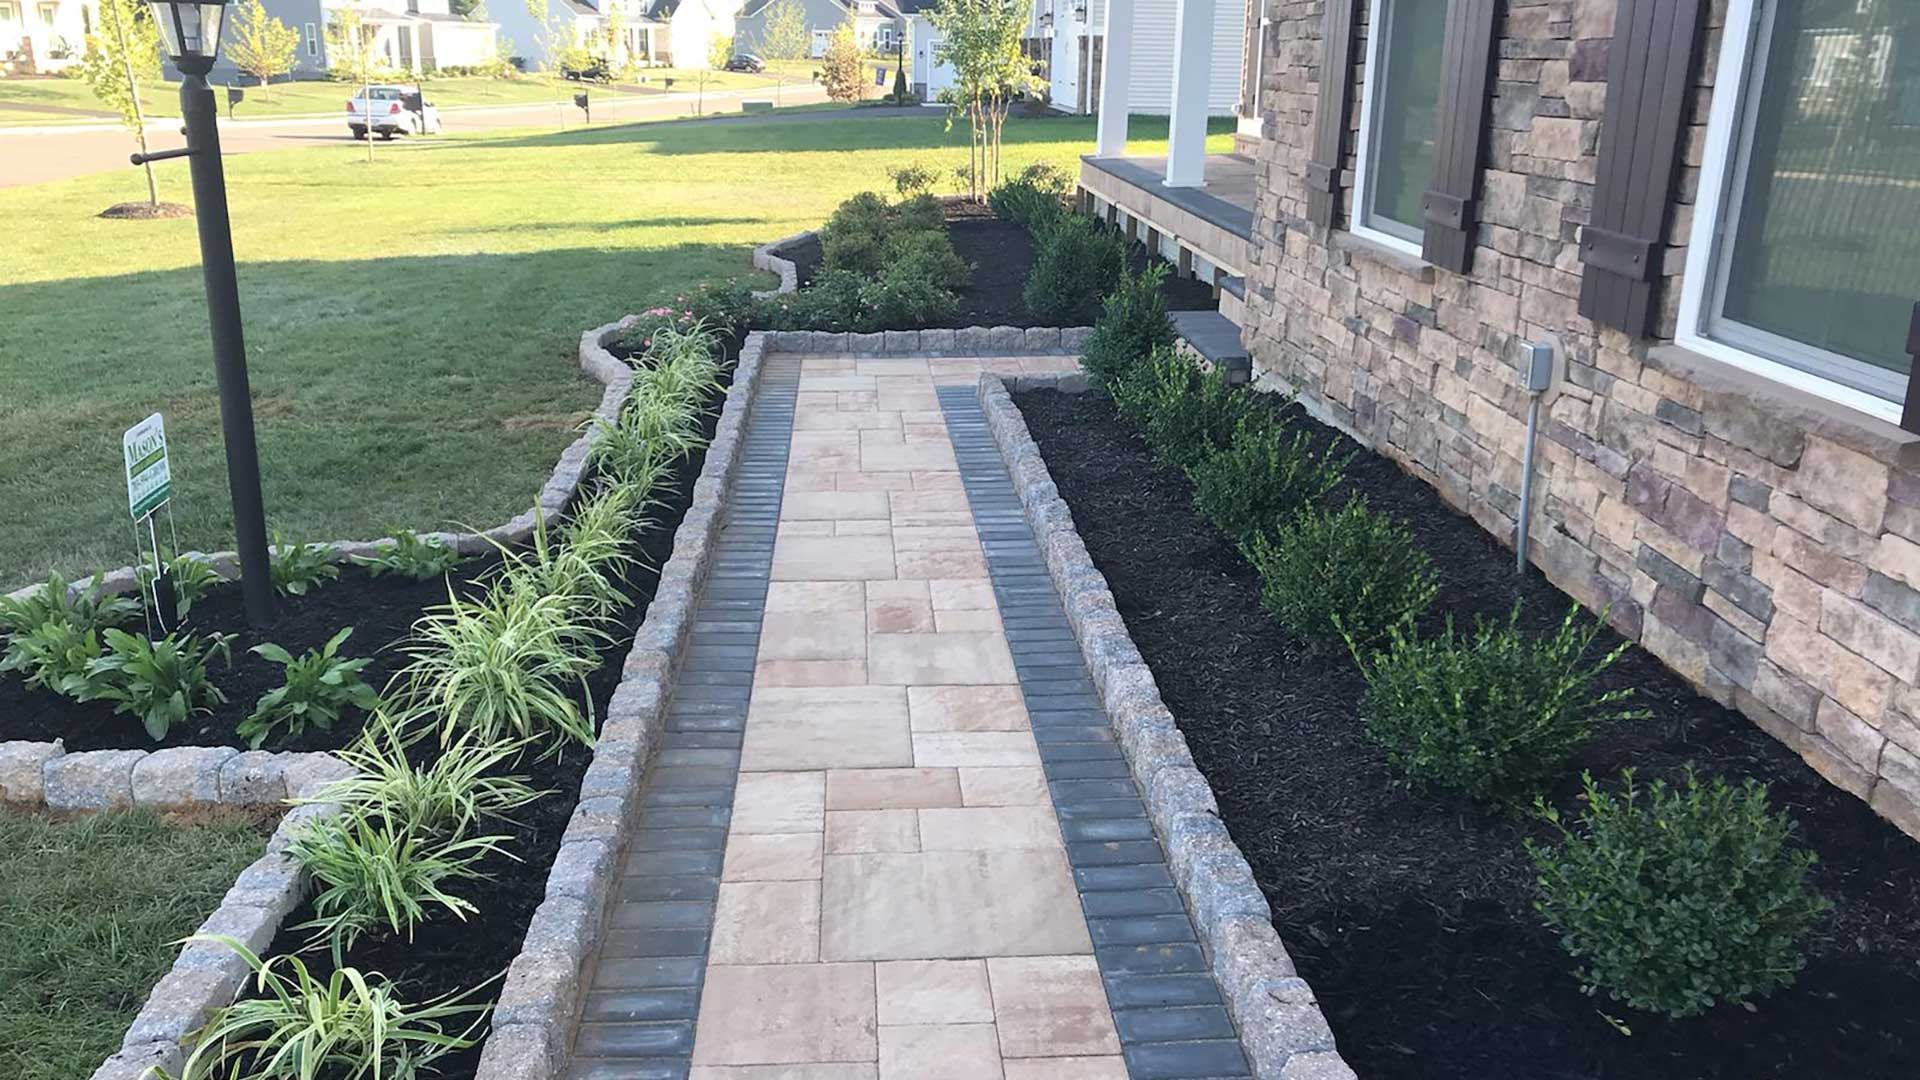 Custom walkway and landscape bed installation with plantings in Warrenton, VA.